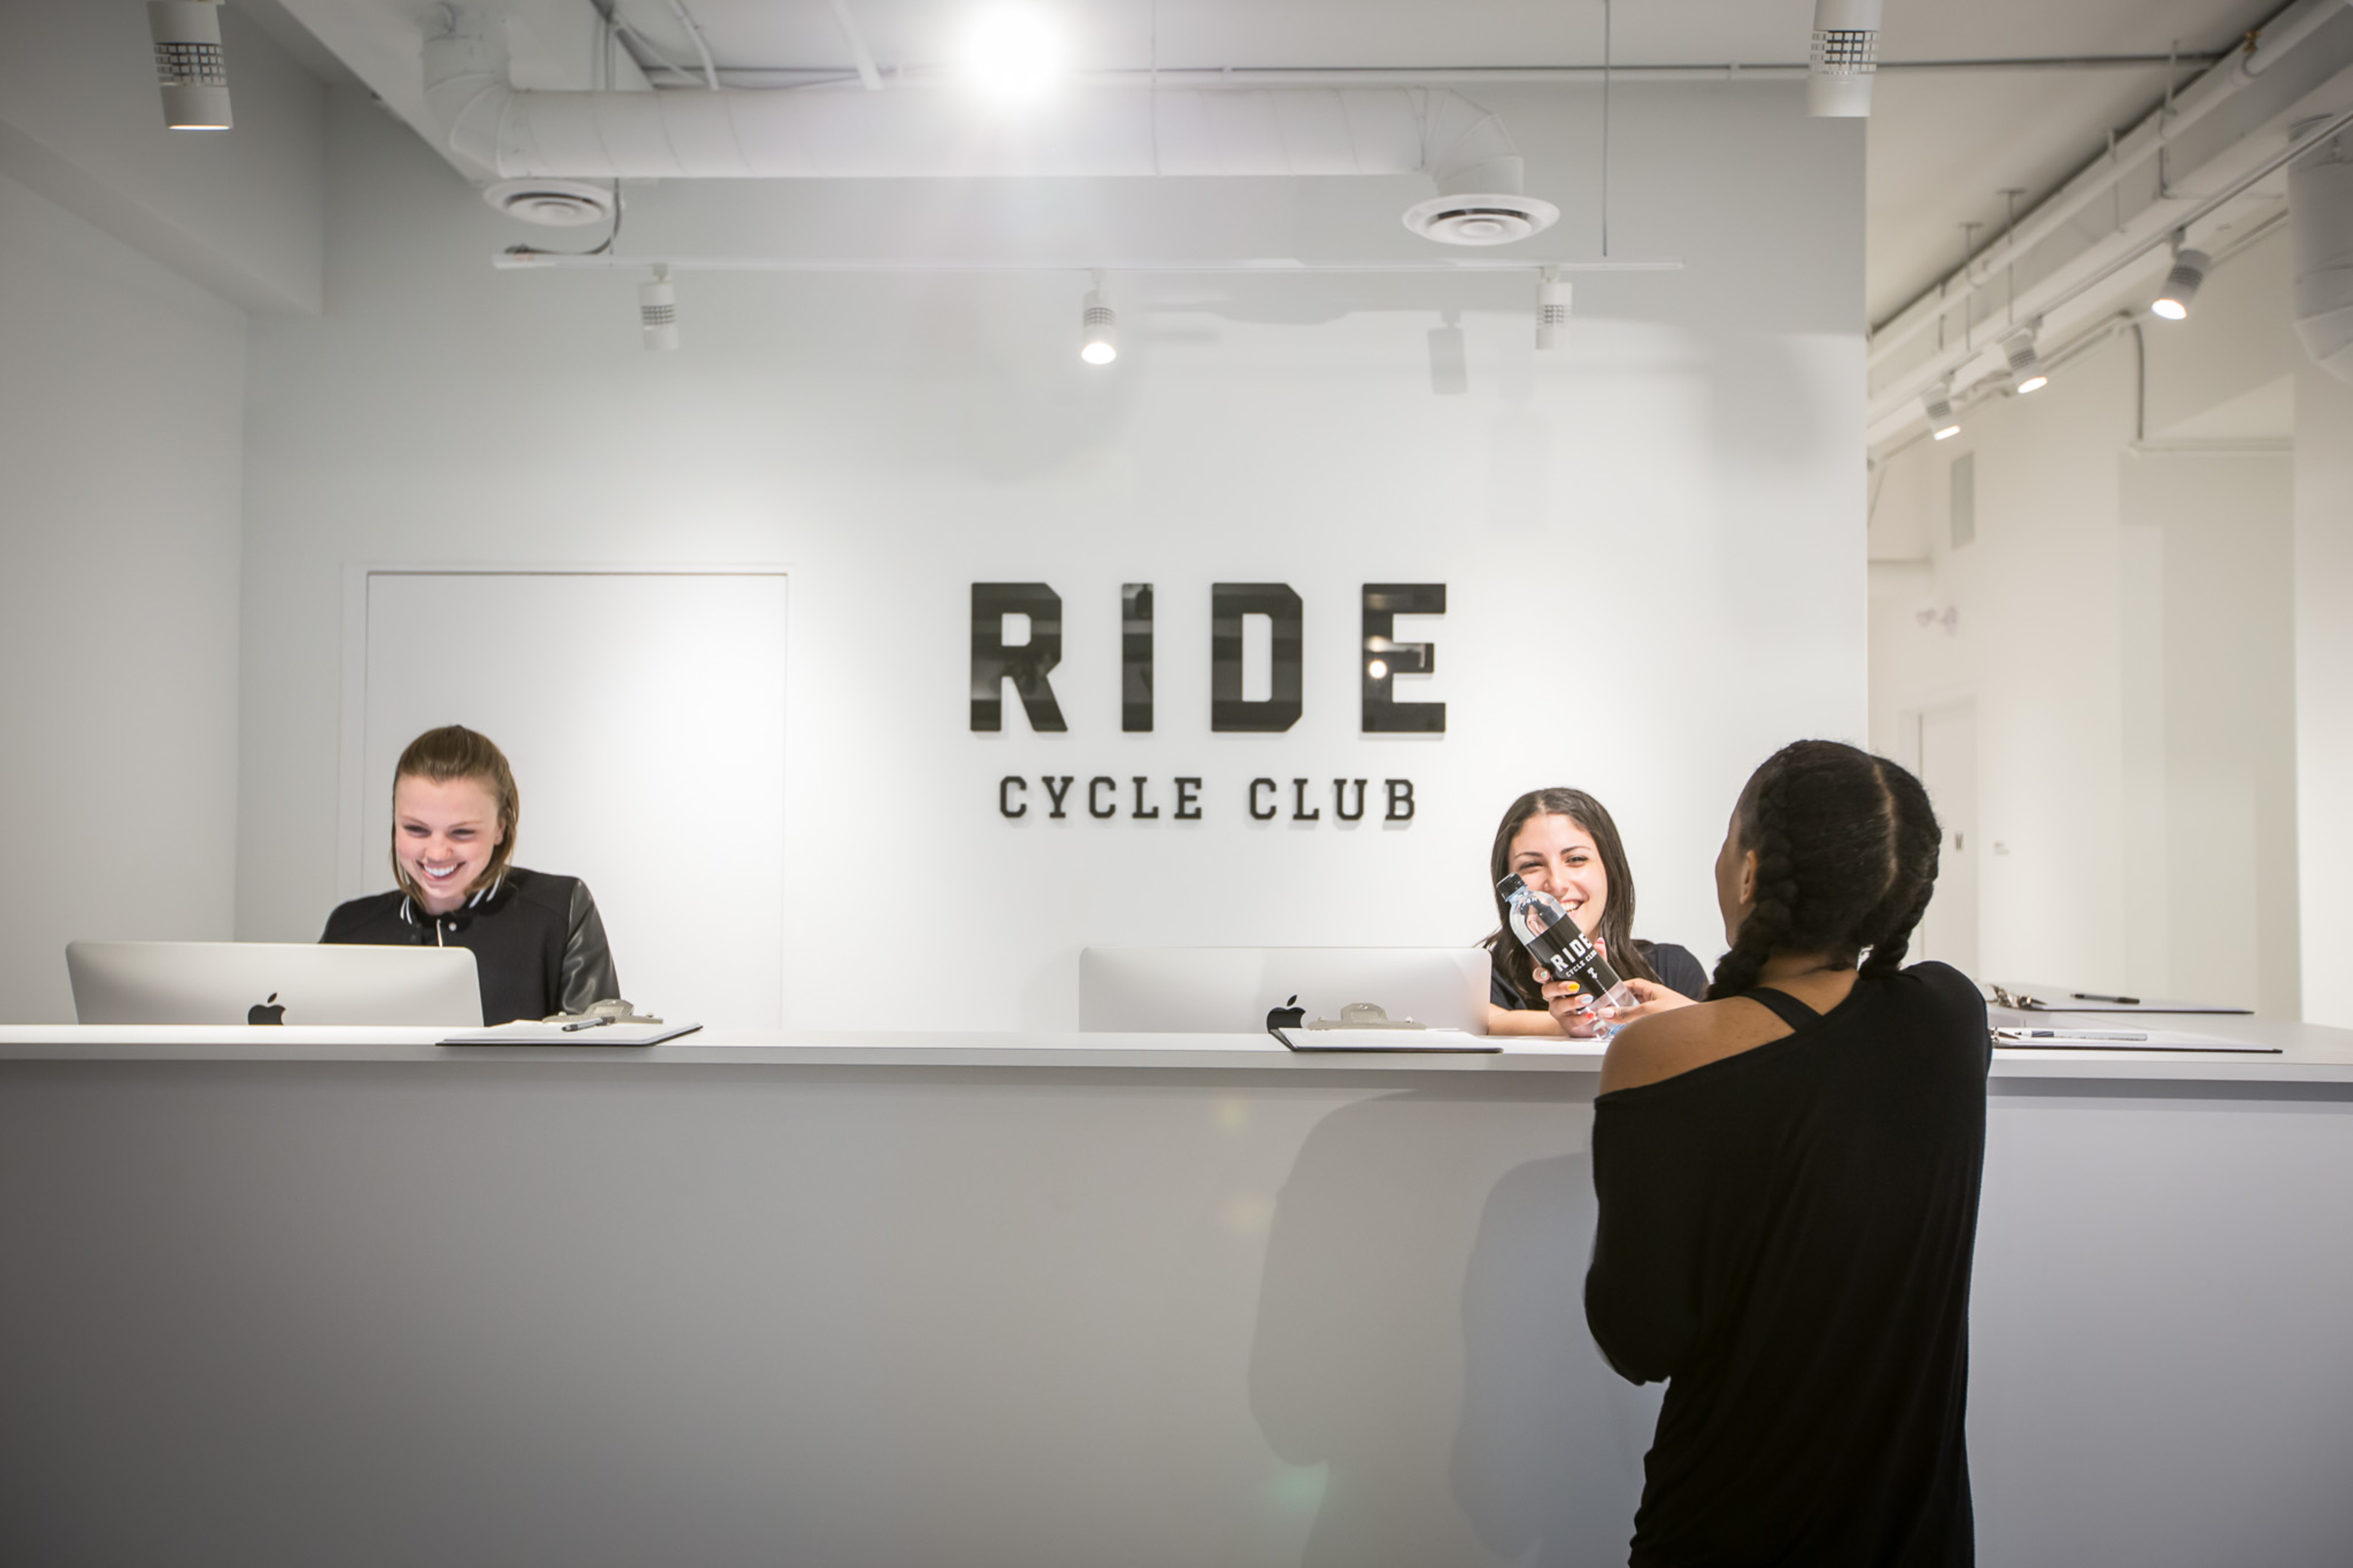 ride cycle club